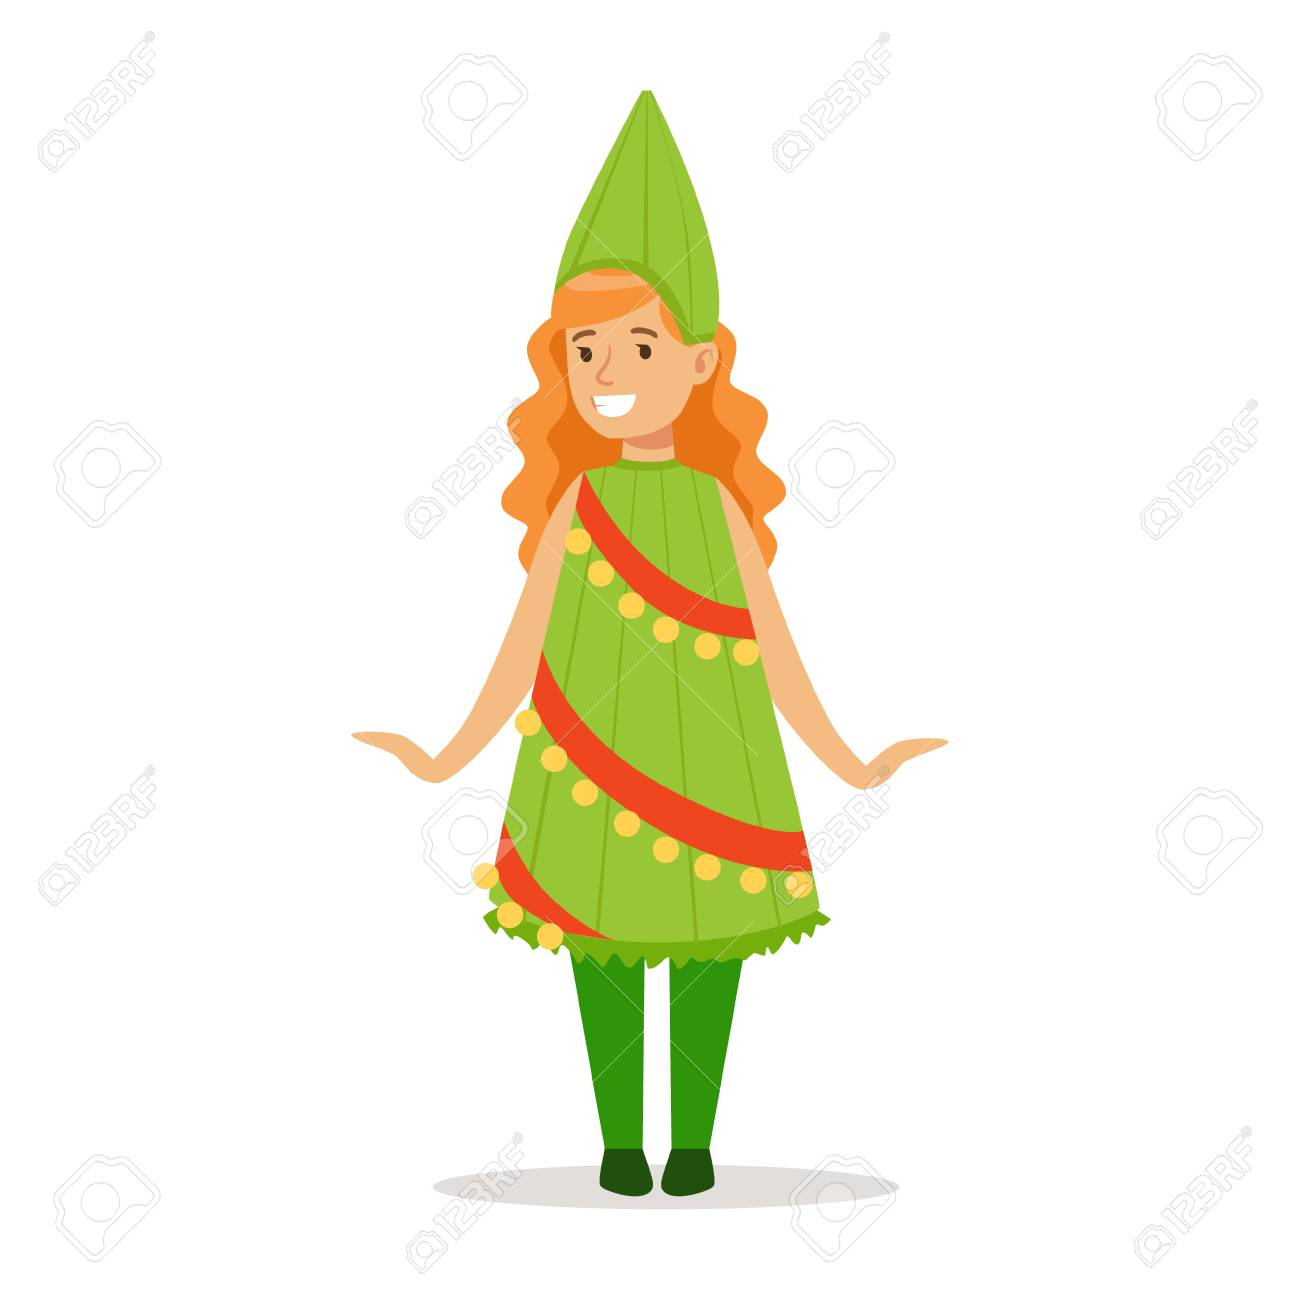 Christmas Carnival Theme Outfit.Girl In Christmas Tree Outfit Dressed As Winter Holidays Symbol